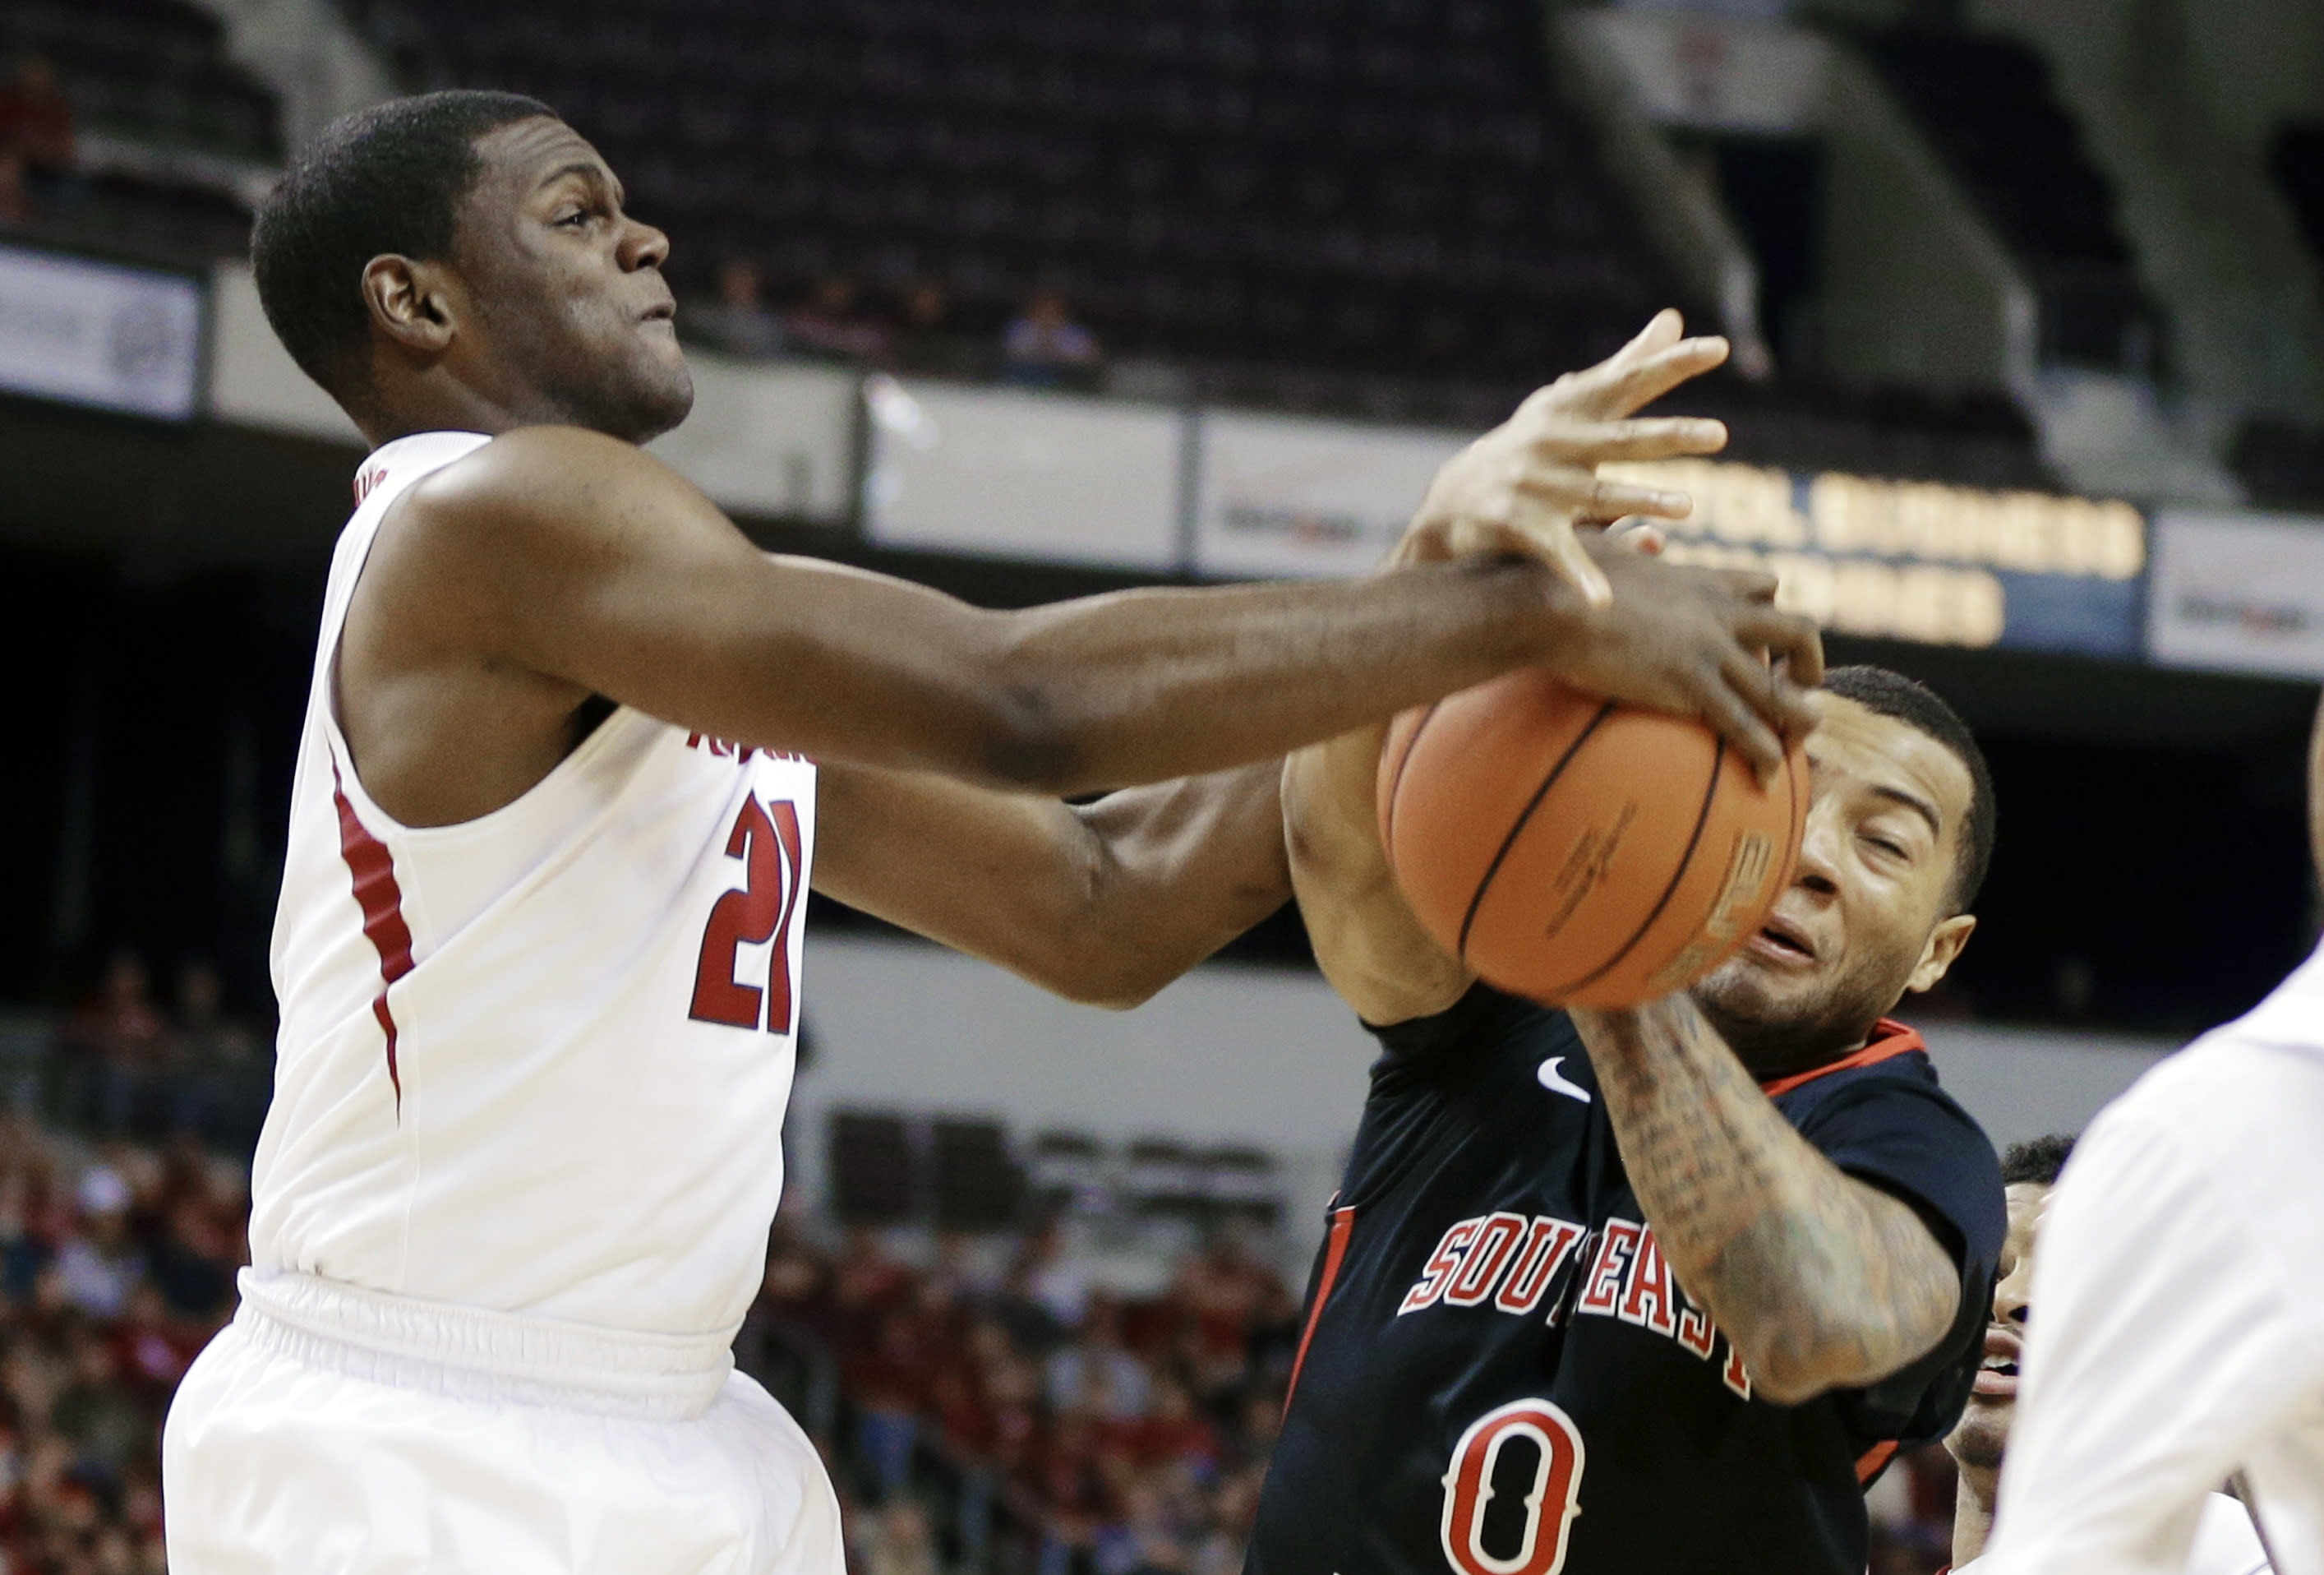 Portis' 24 leads Arkansas past SE Missouri 84-67